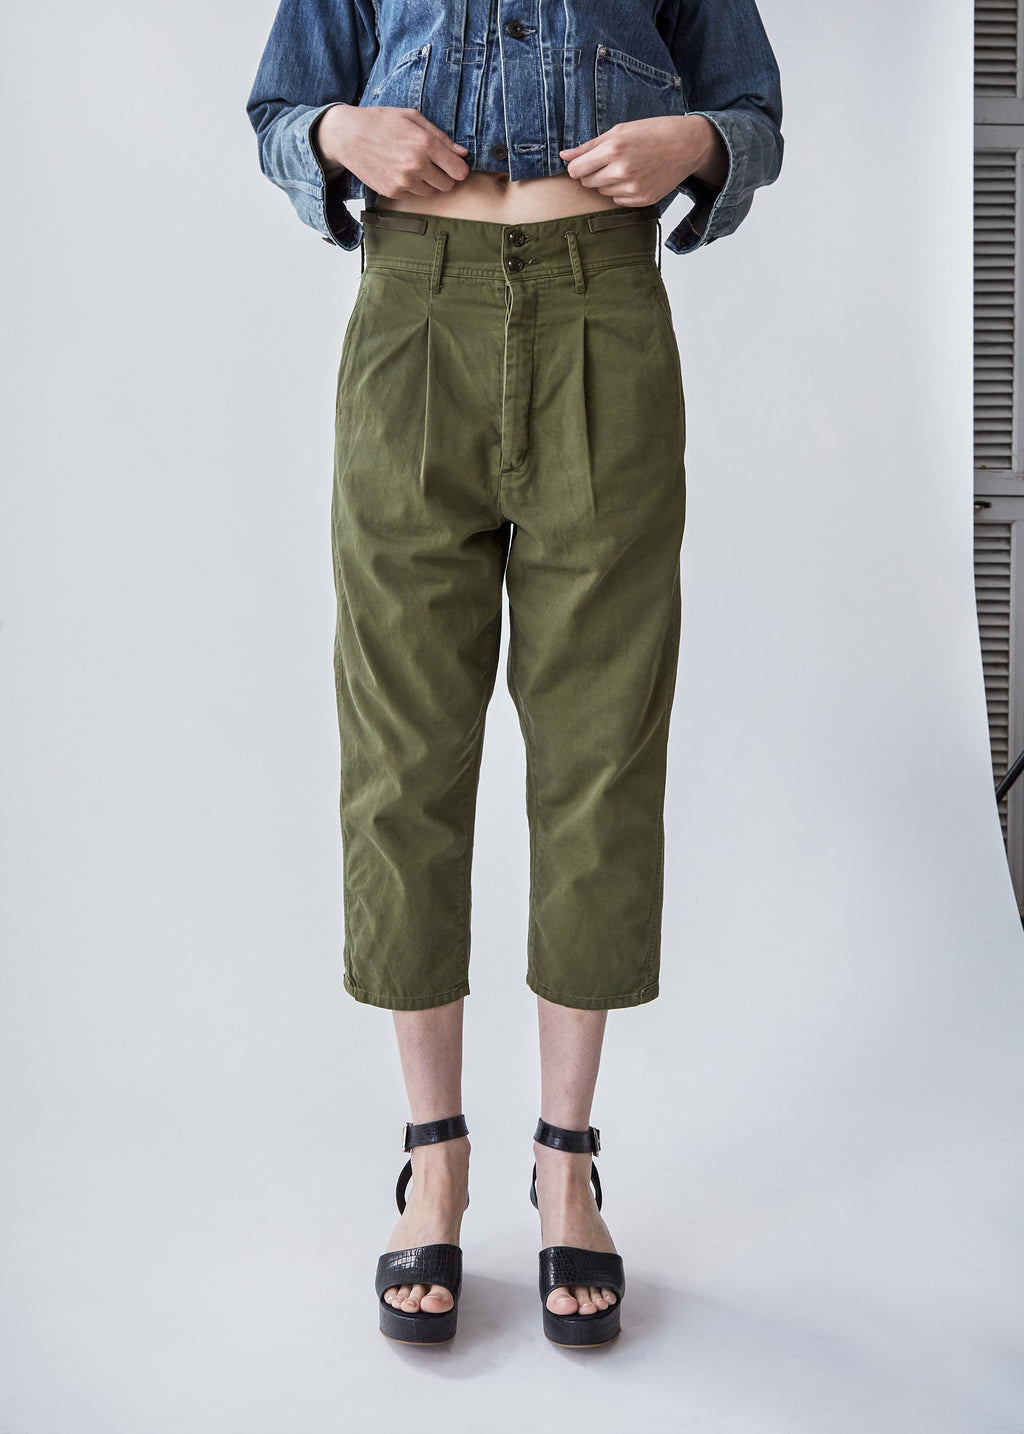 Farmer's Work Pant in Khaki Green